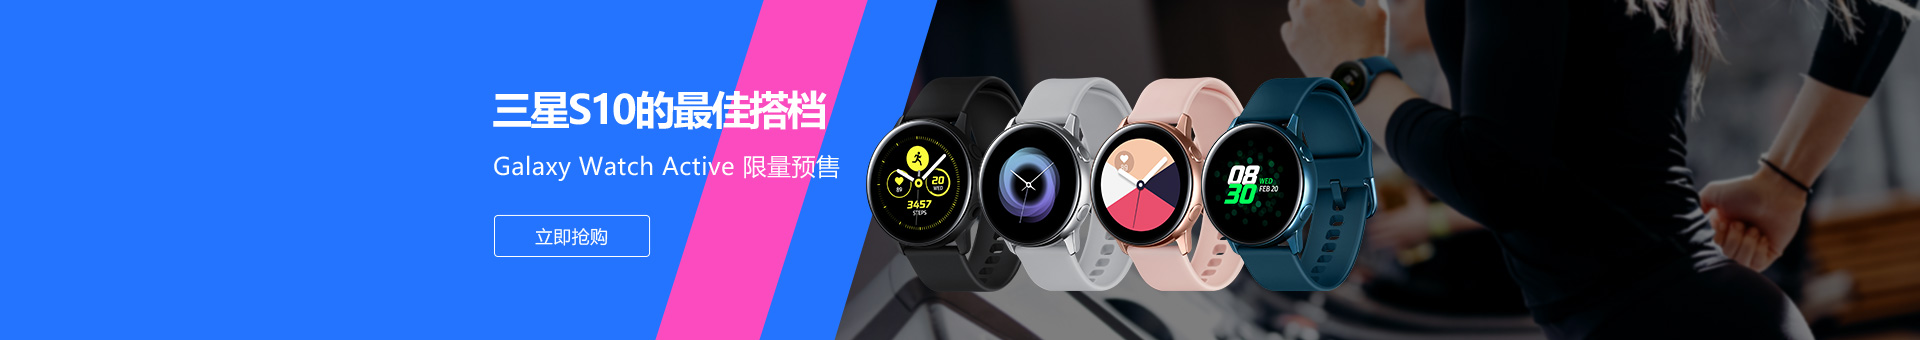 2019最新款Samsung Galaxy Watch Active预售